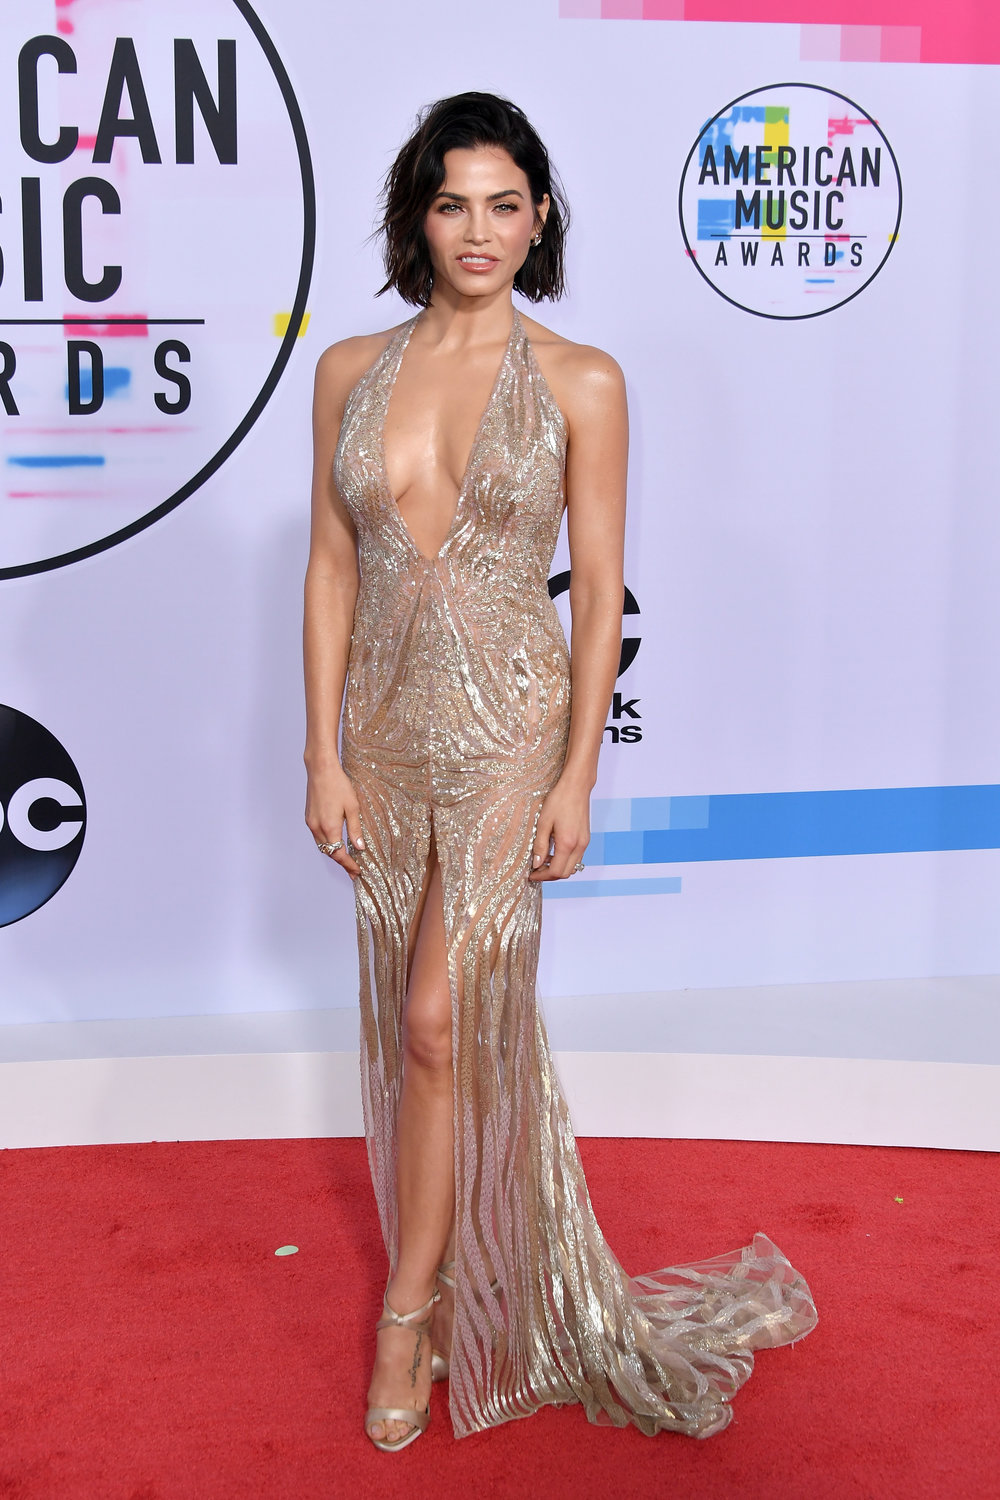 Champagne Tatum - Jenna Tatum dazzled with this flowing sparkly dress. That nude dress with shimmery embroidery was a standout at the awards show.